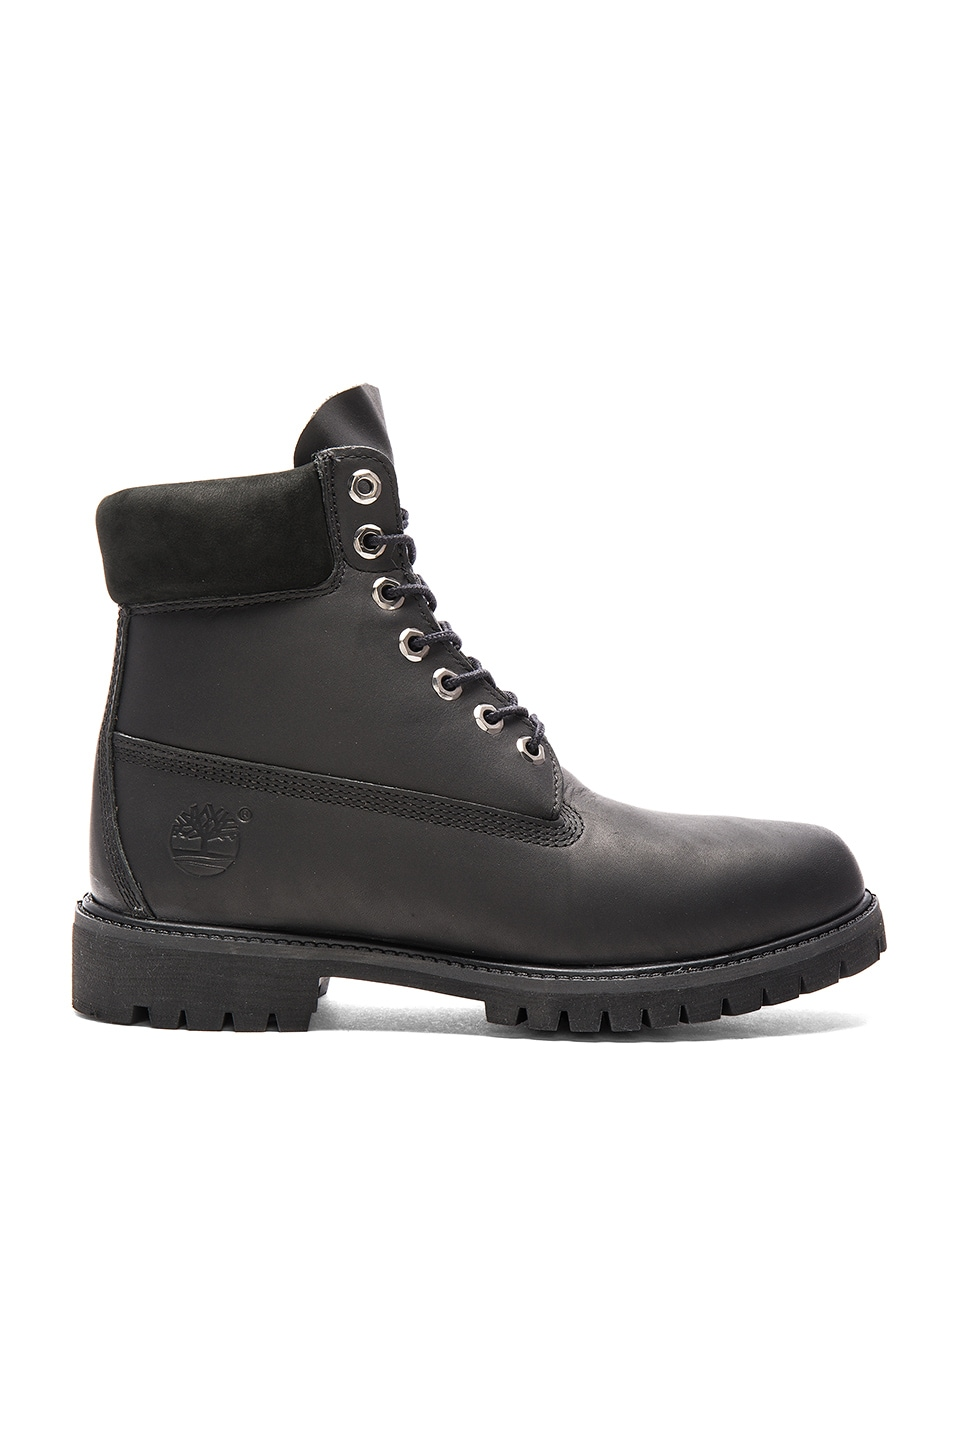 6″ Smooth by Timberland